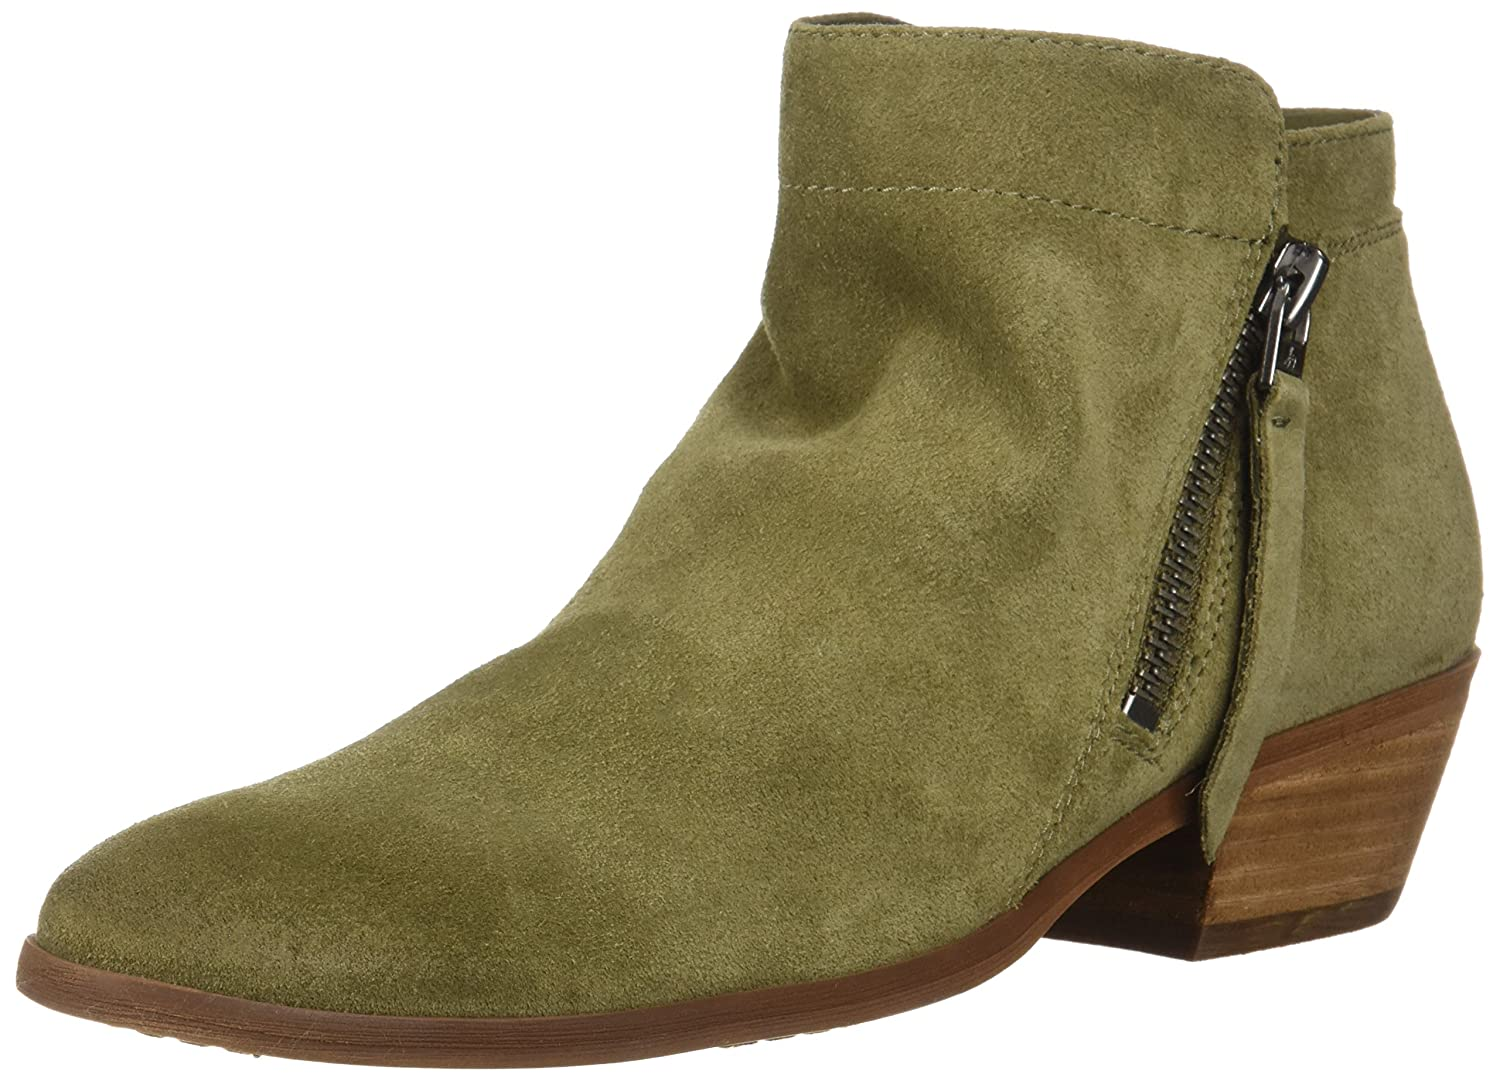 Sam Edelman Women's Packer Ankle Boot B07BR8D9PC 5 B(M) US|Moss Green Suede